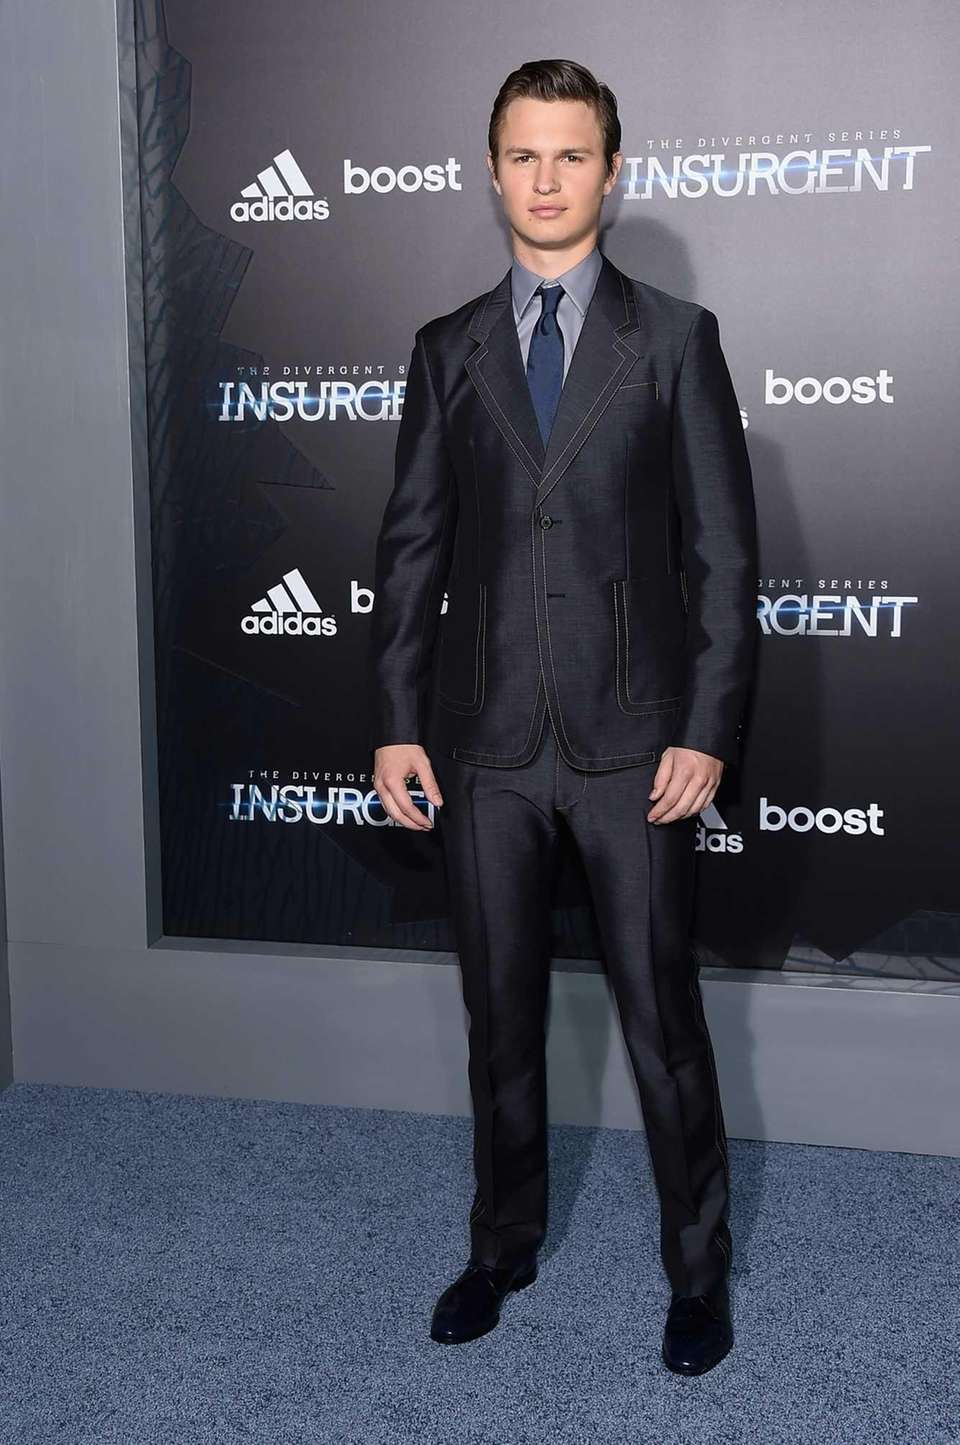 Ansel Elgort, who starred in